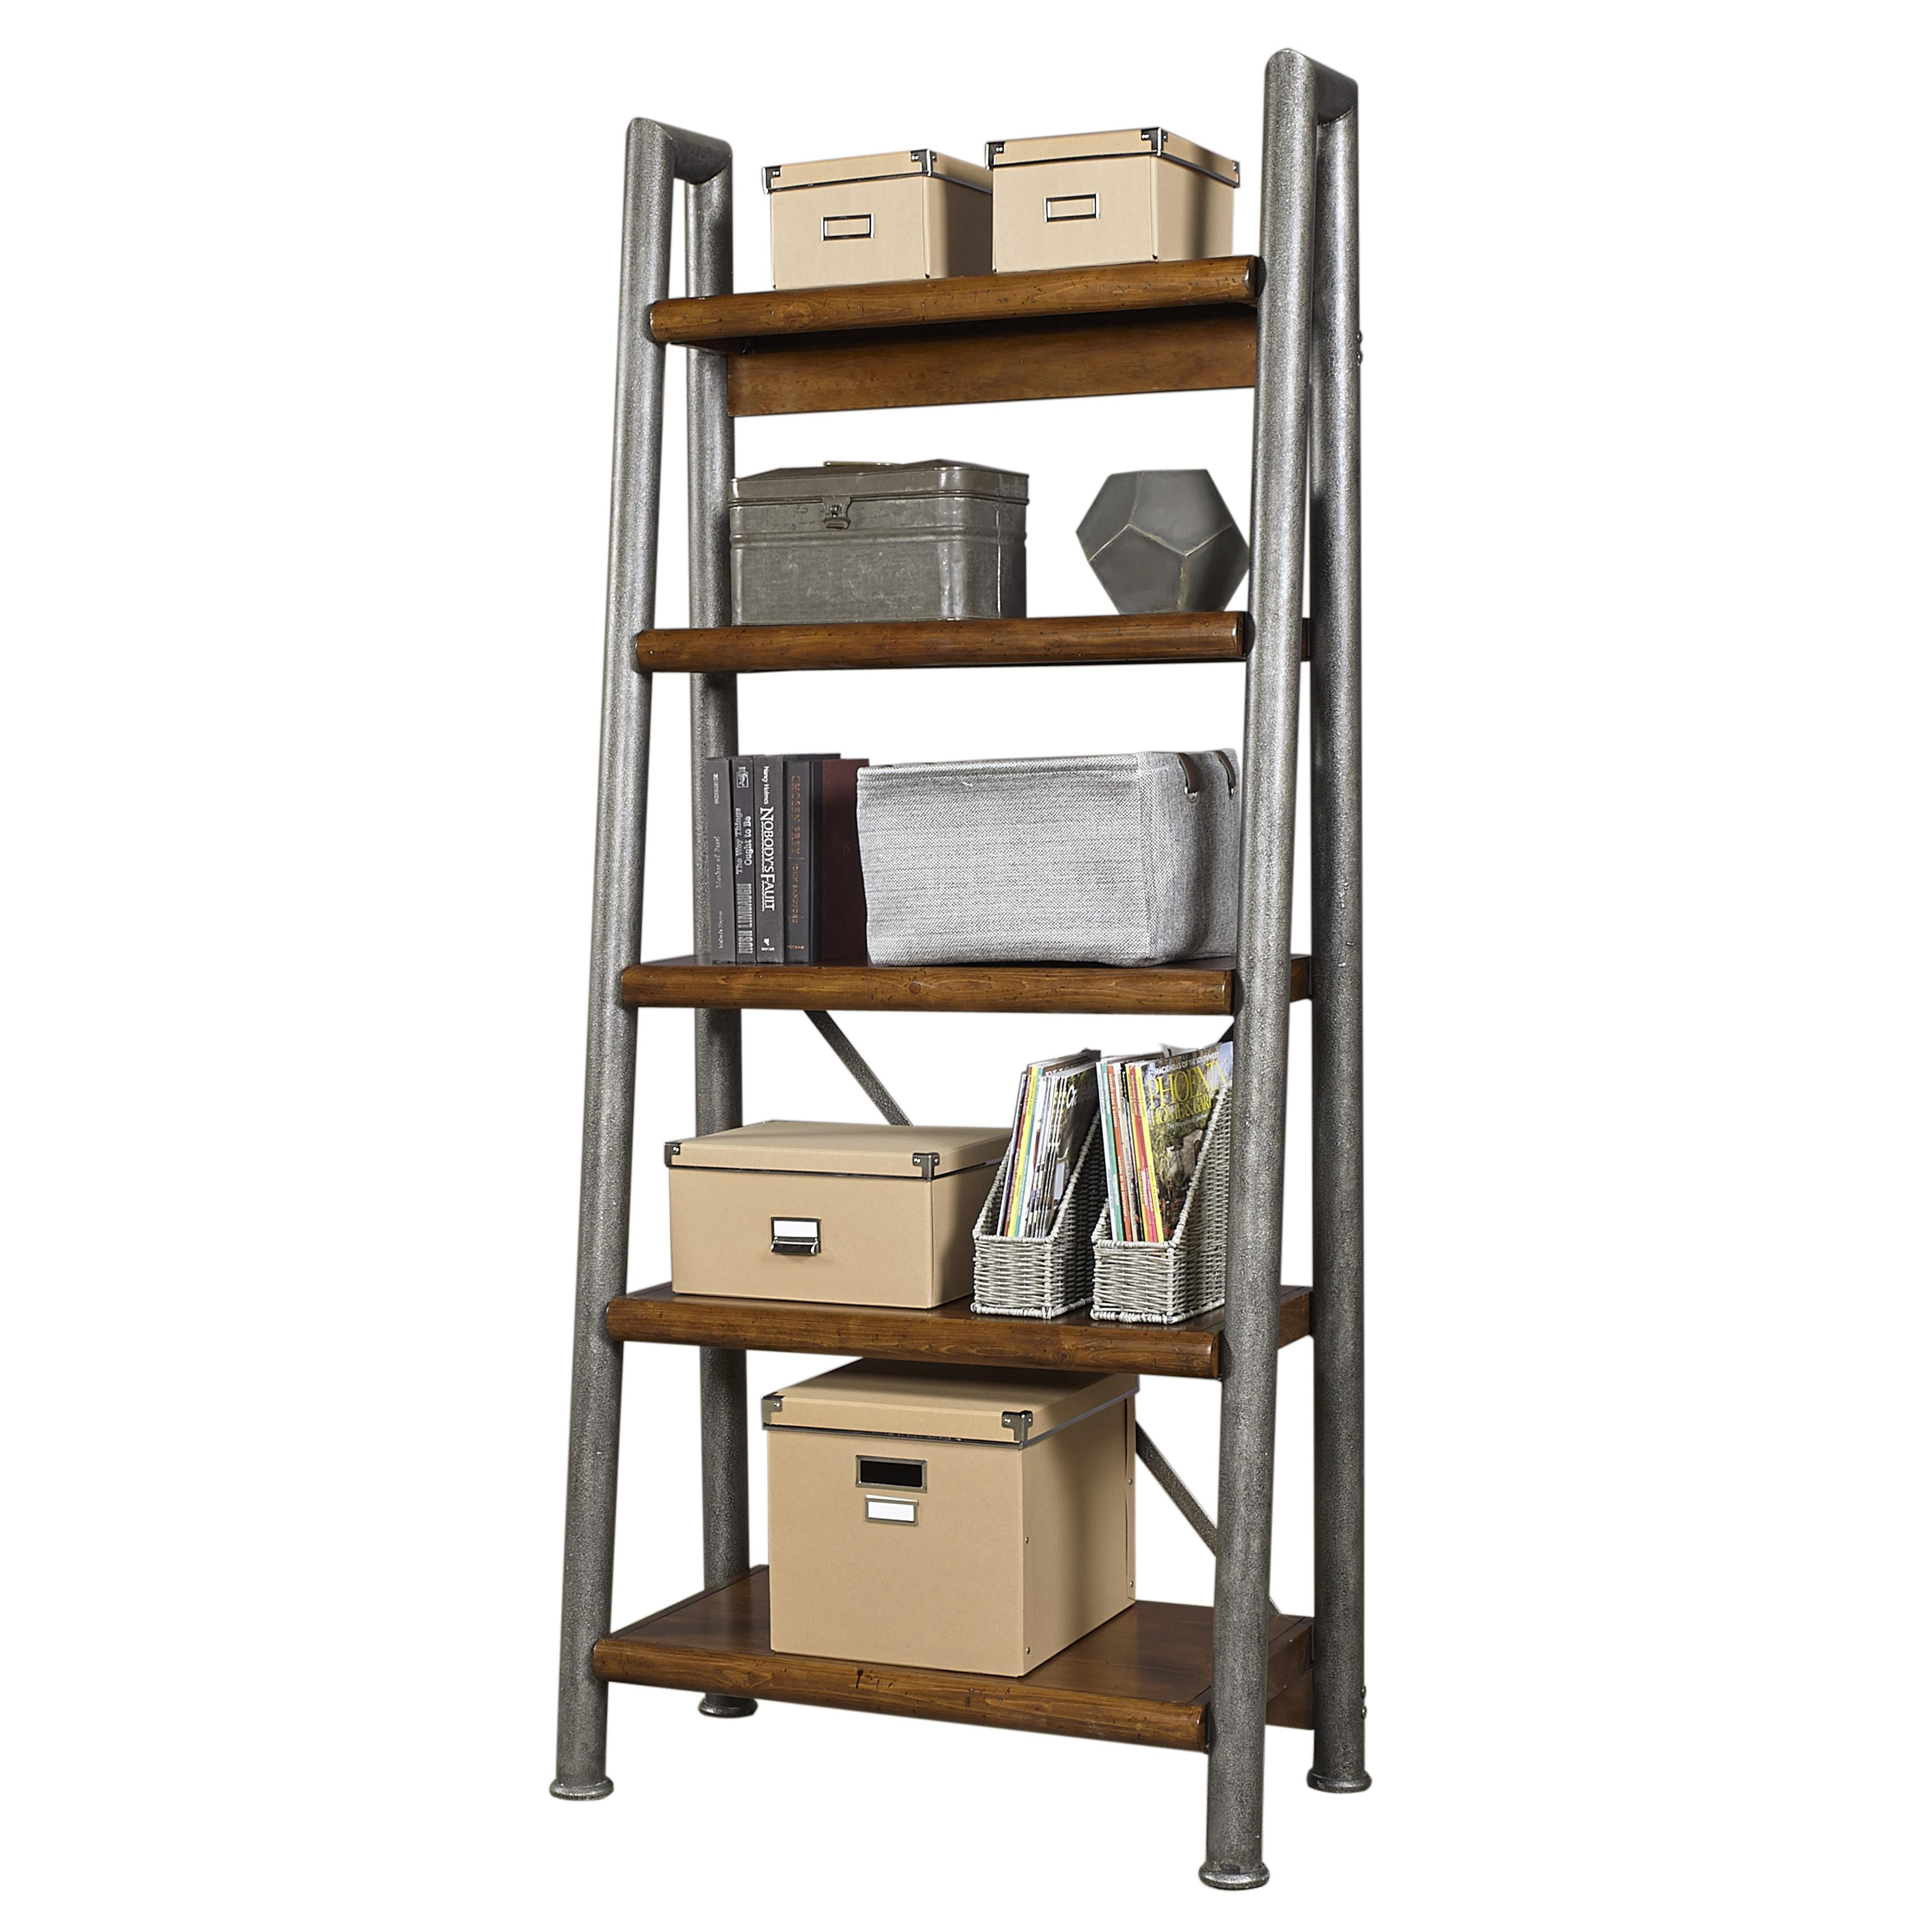 Aspenhome Rockland Leaning Metal and Wood Bookcase - Item Number: I58-392